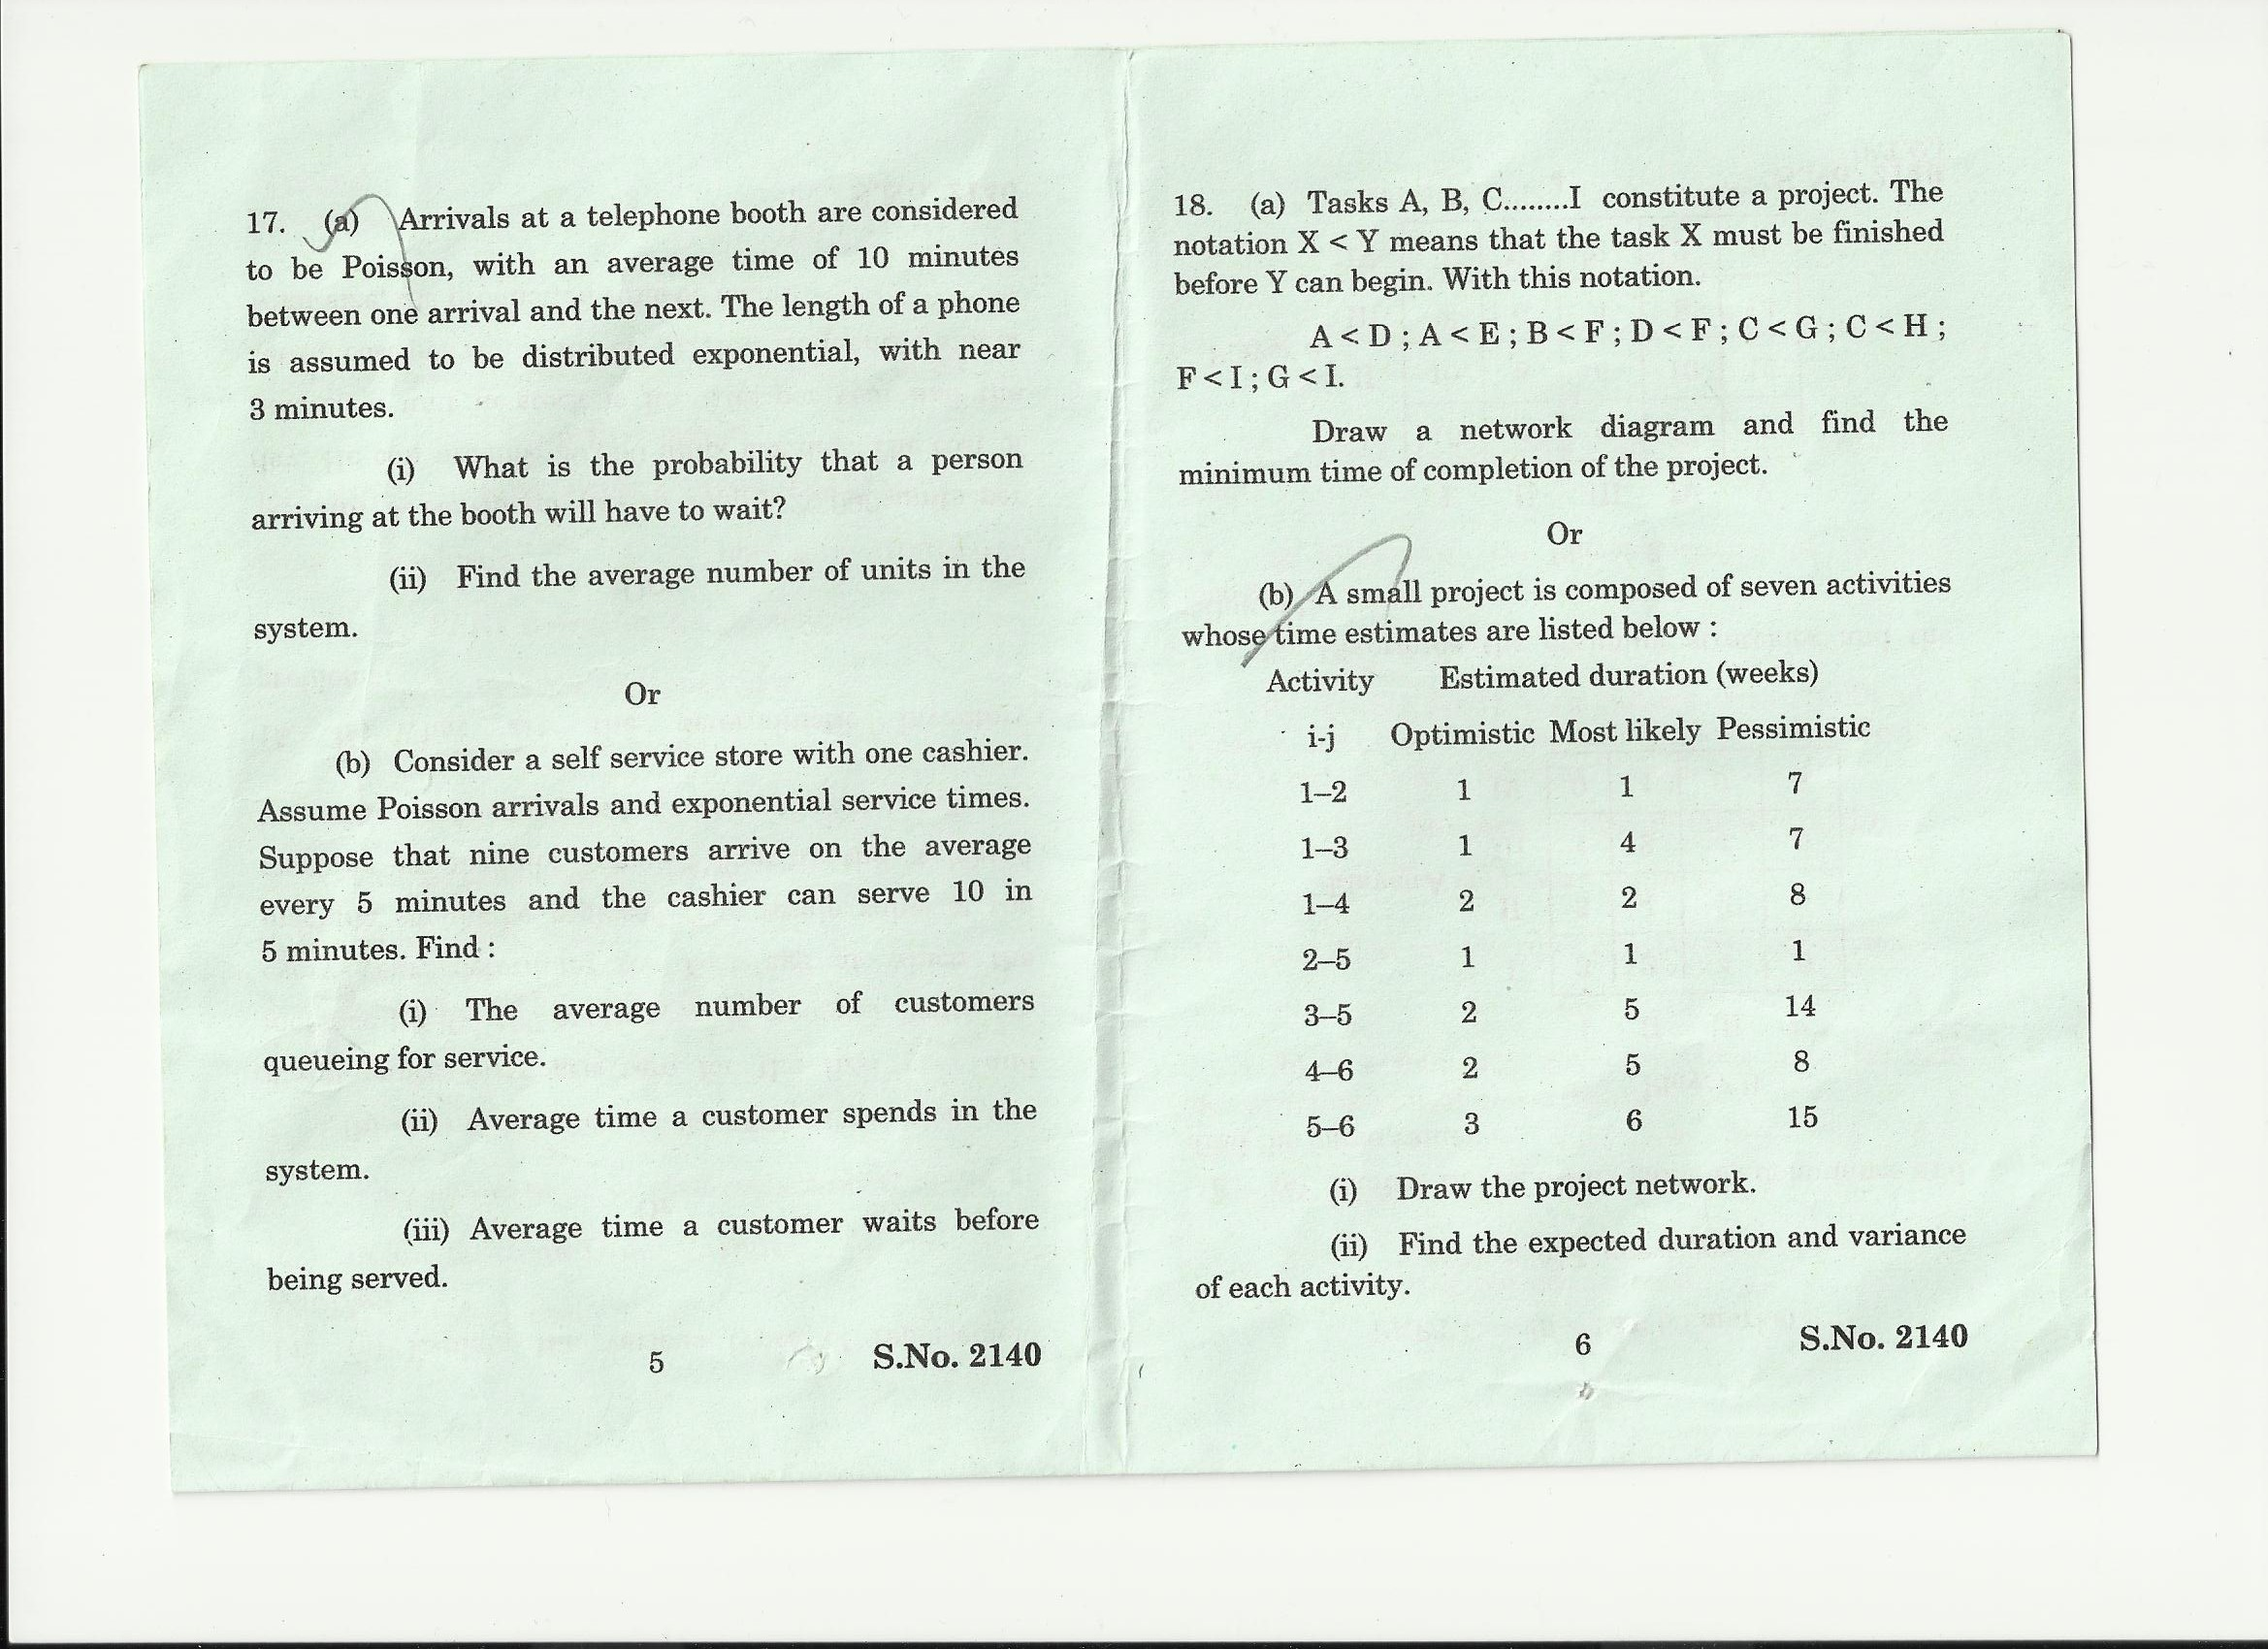 model question paper applied operation research Hello sir,i would like to have sample questions of entrance exams for or which is  held by the delhi universityi would be obliged if you suggest.